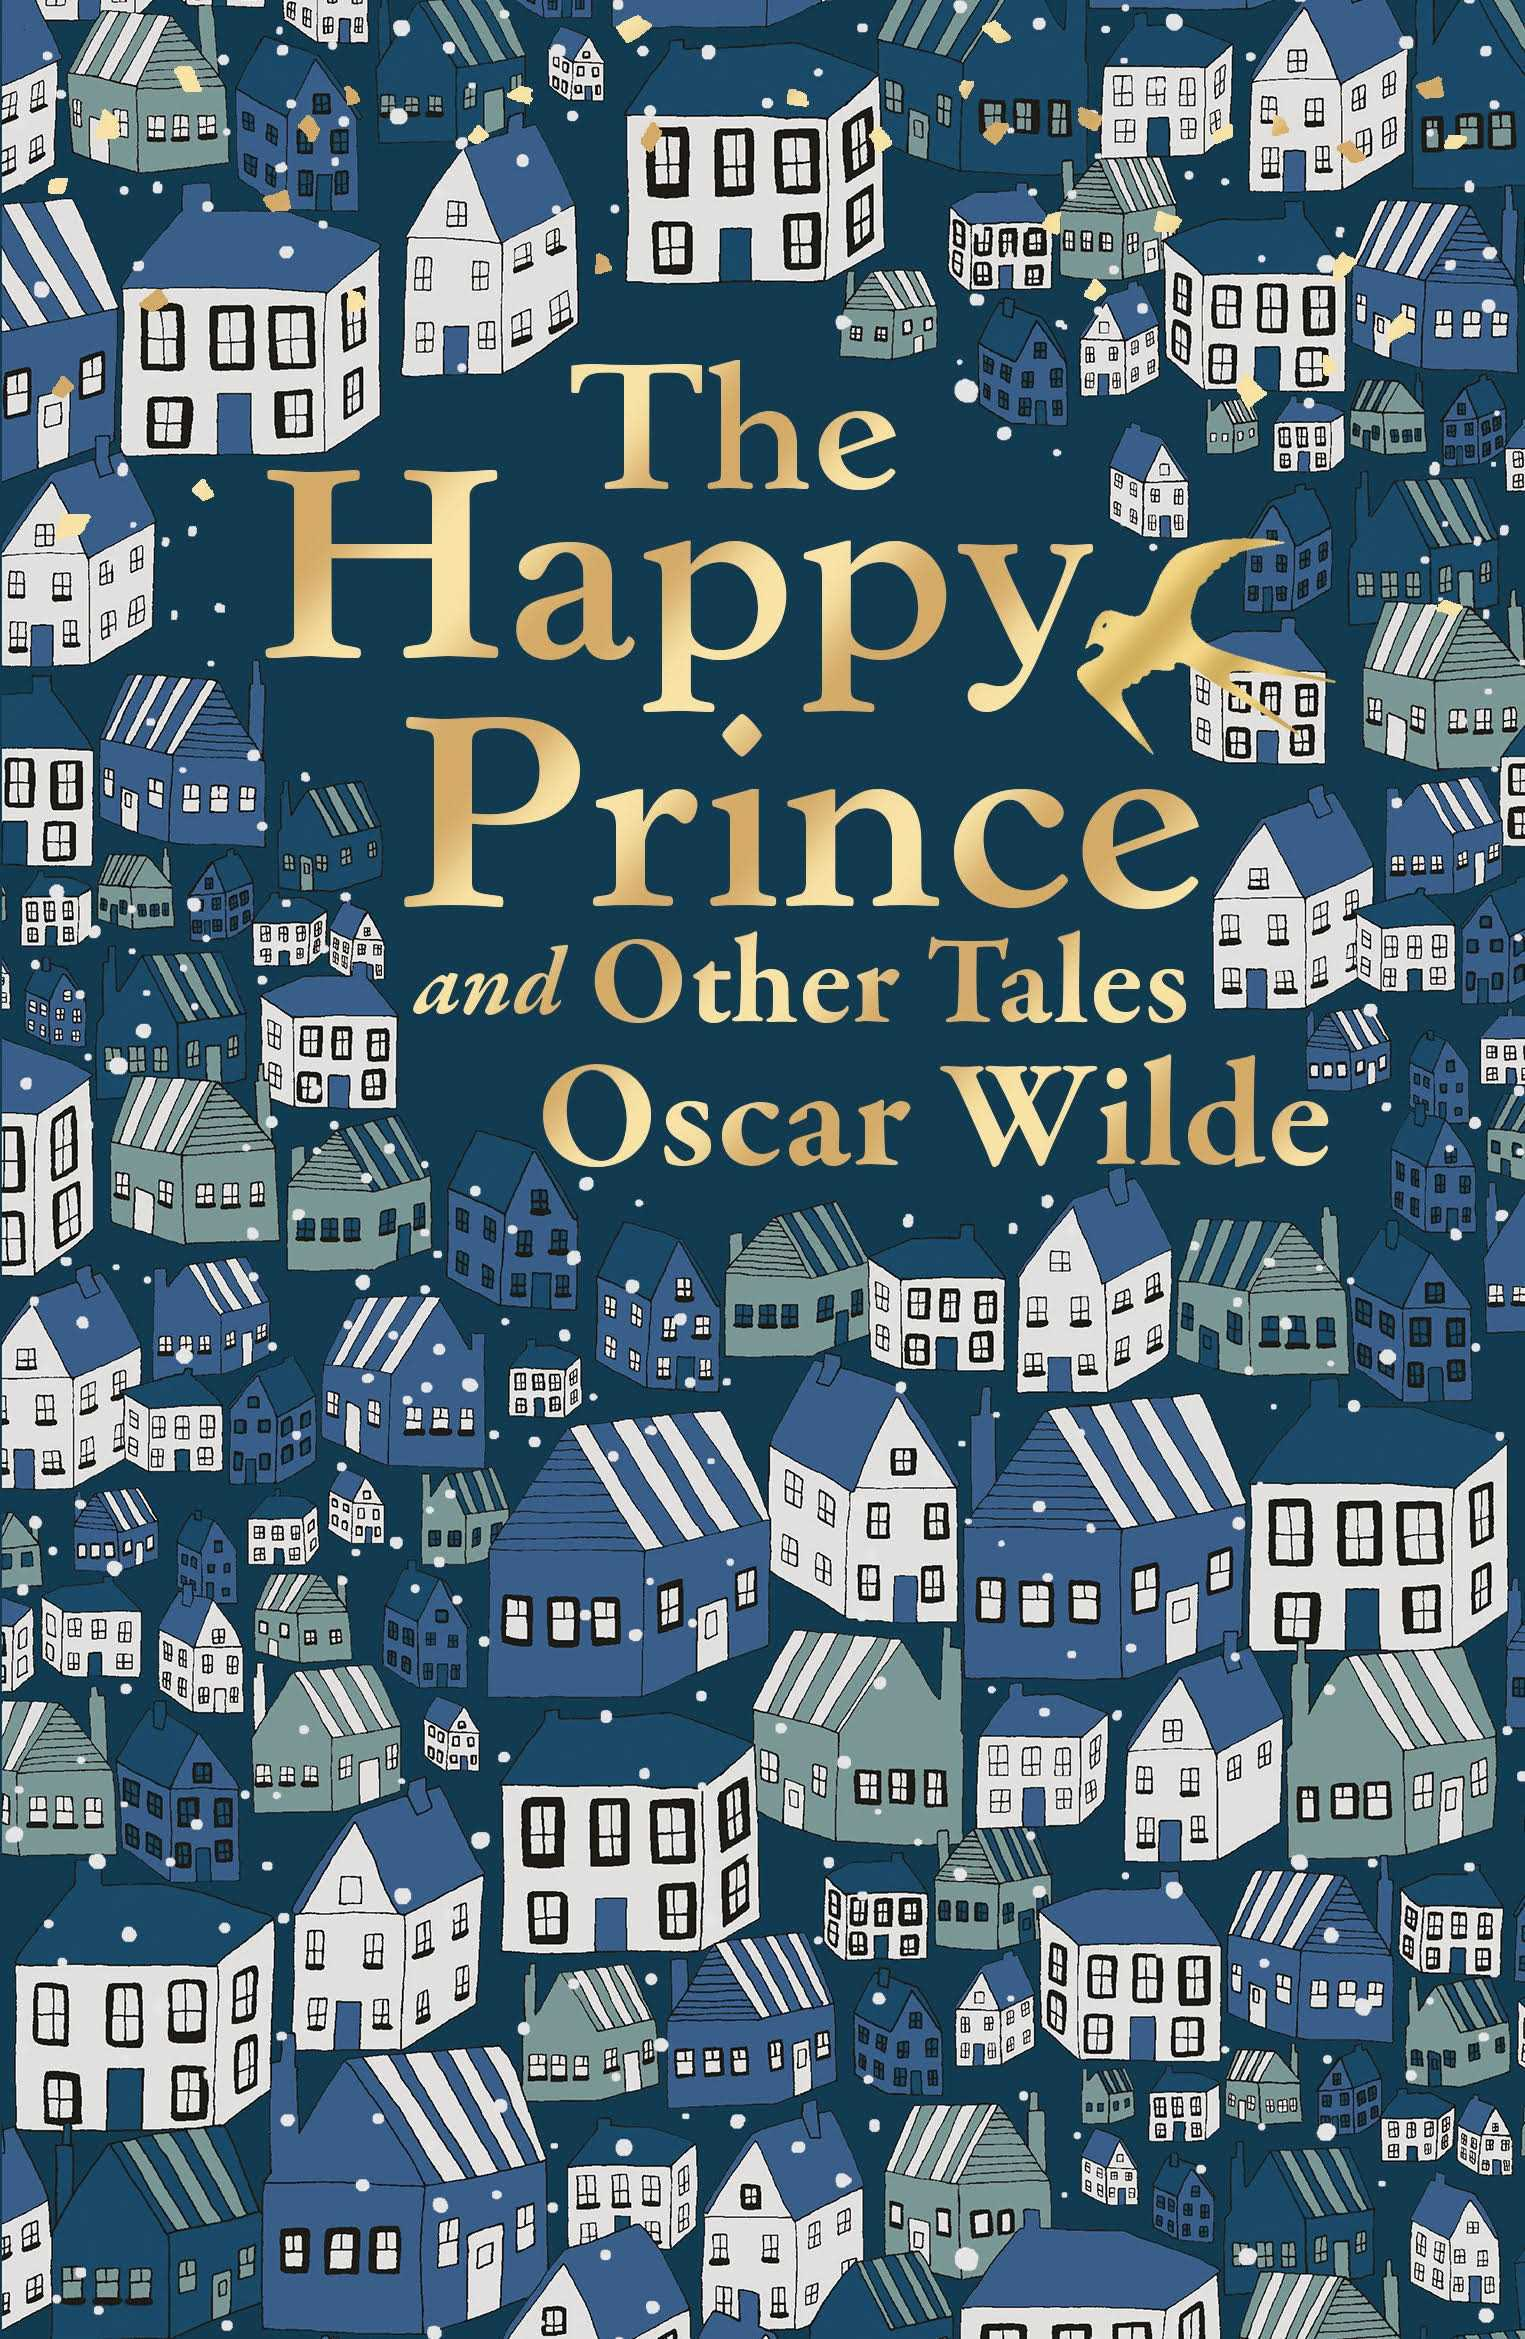 The Happy Prince and Other Tales (Liberty of London Edition)